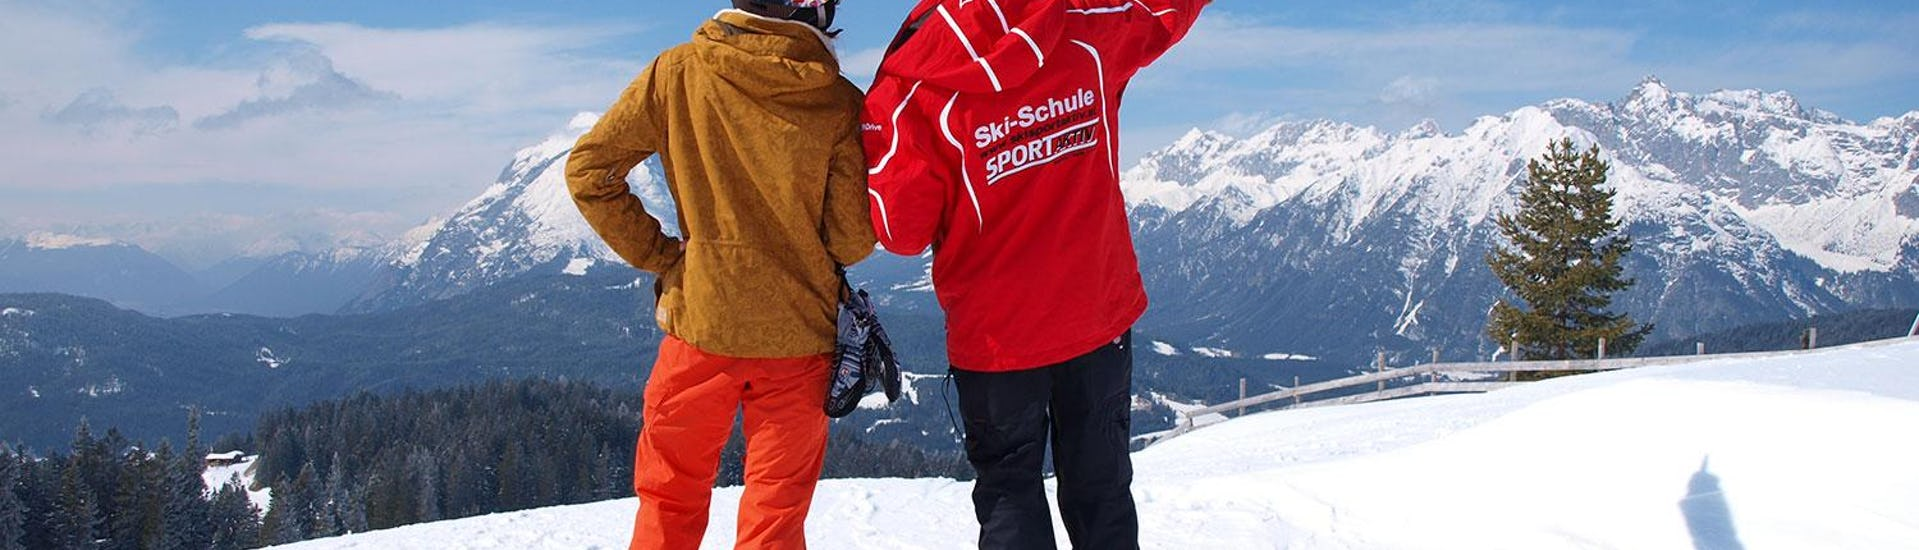 Snowboardinstructor and the student with back to the camera and ski instructor pointing at the mountain panorama